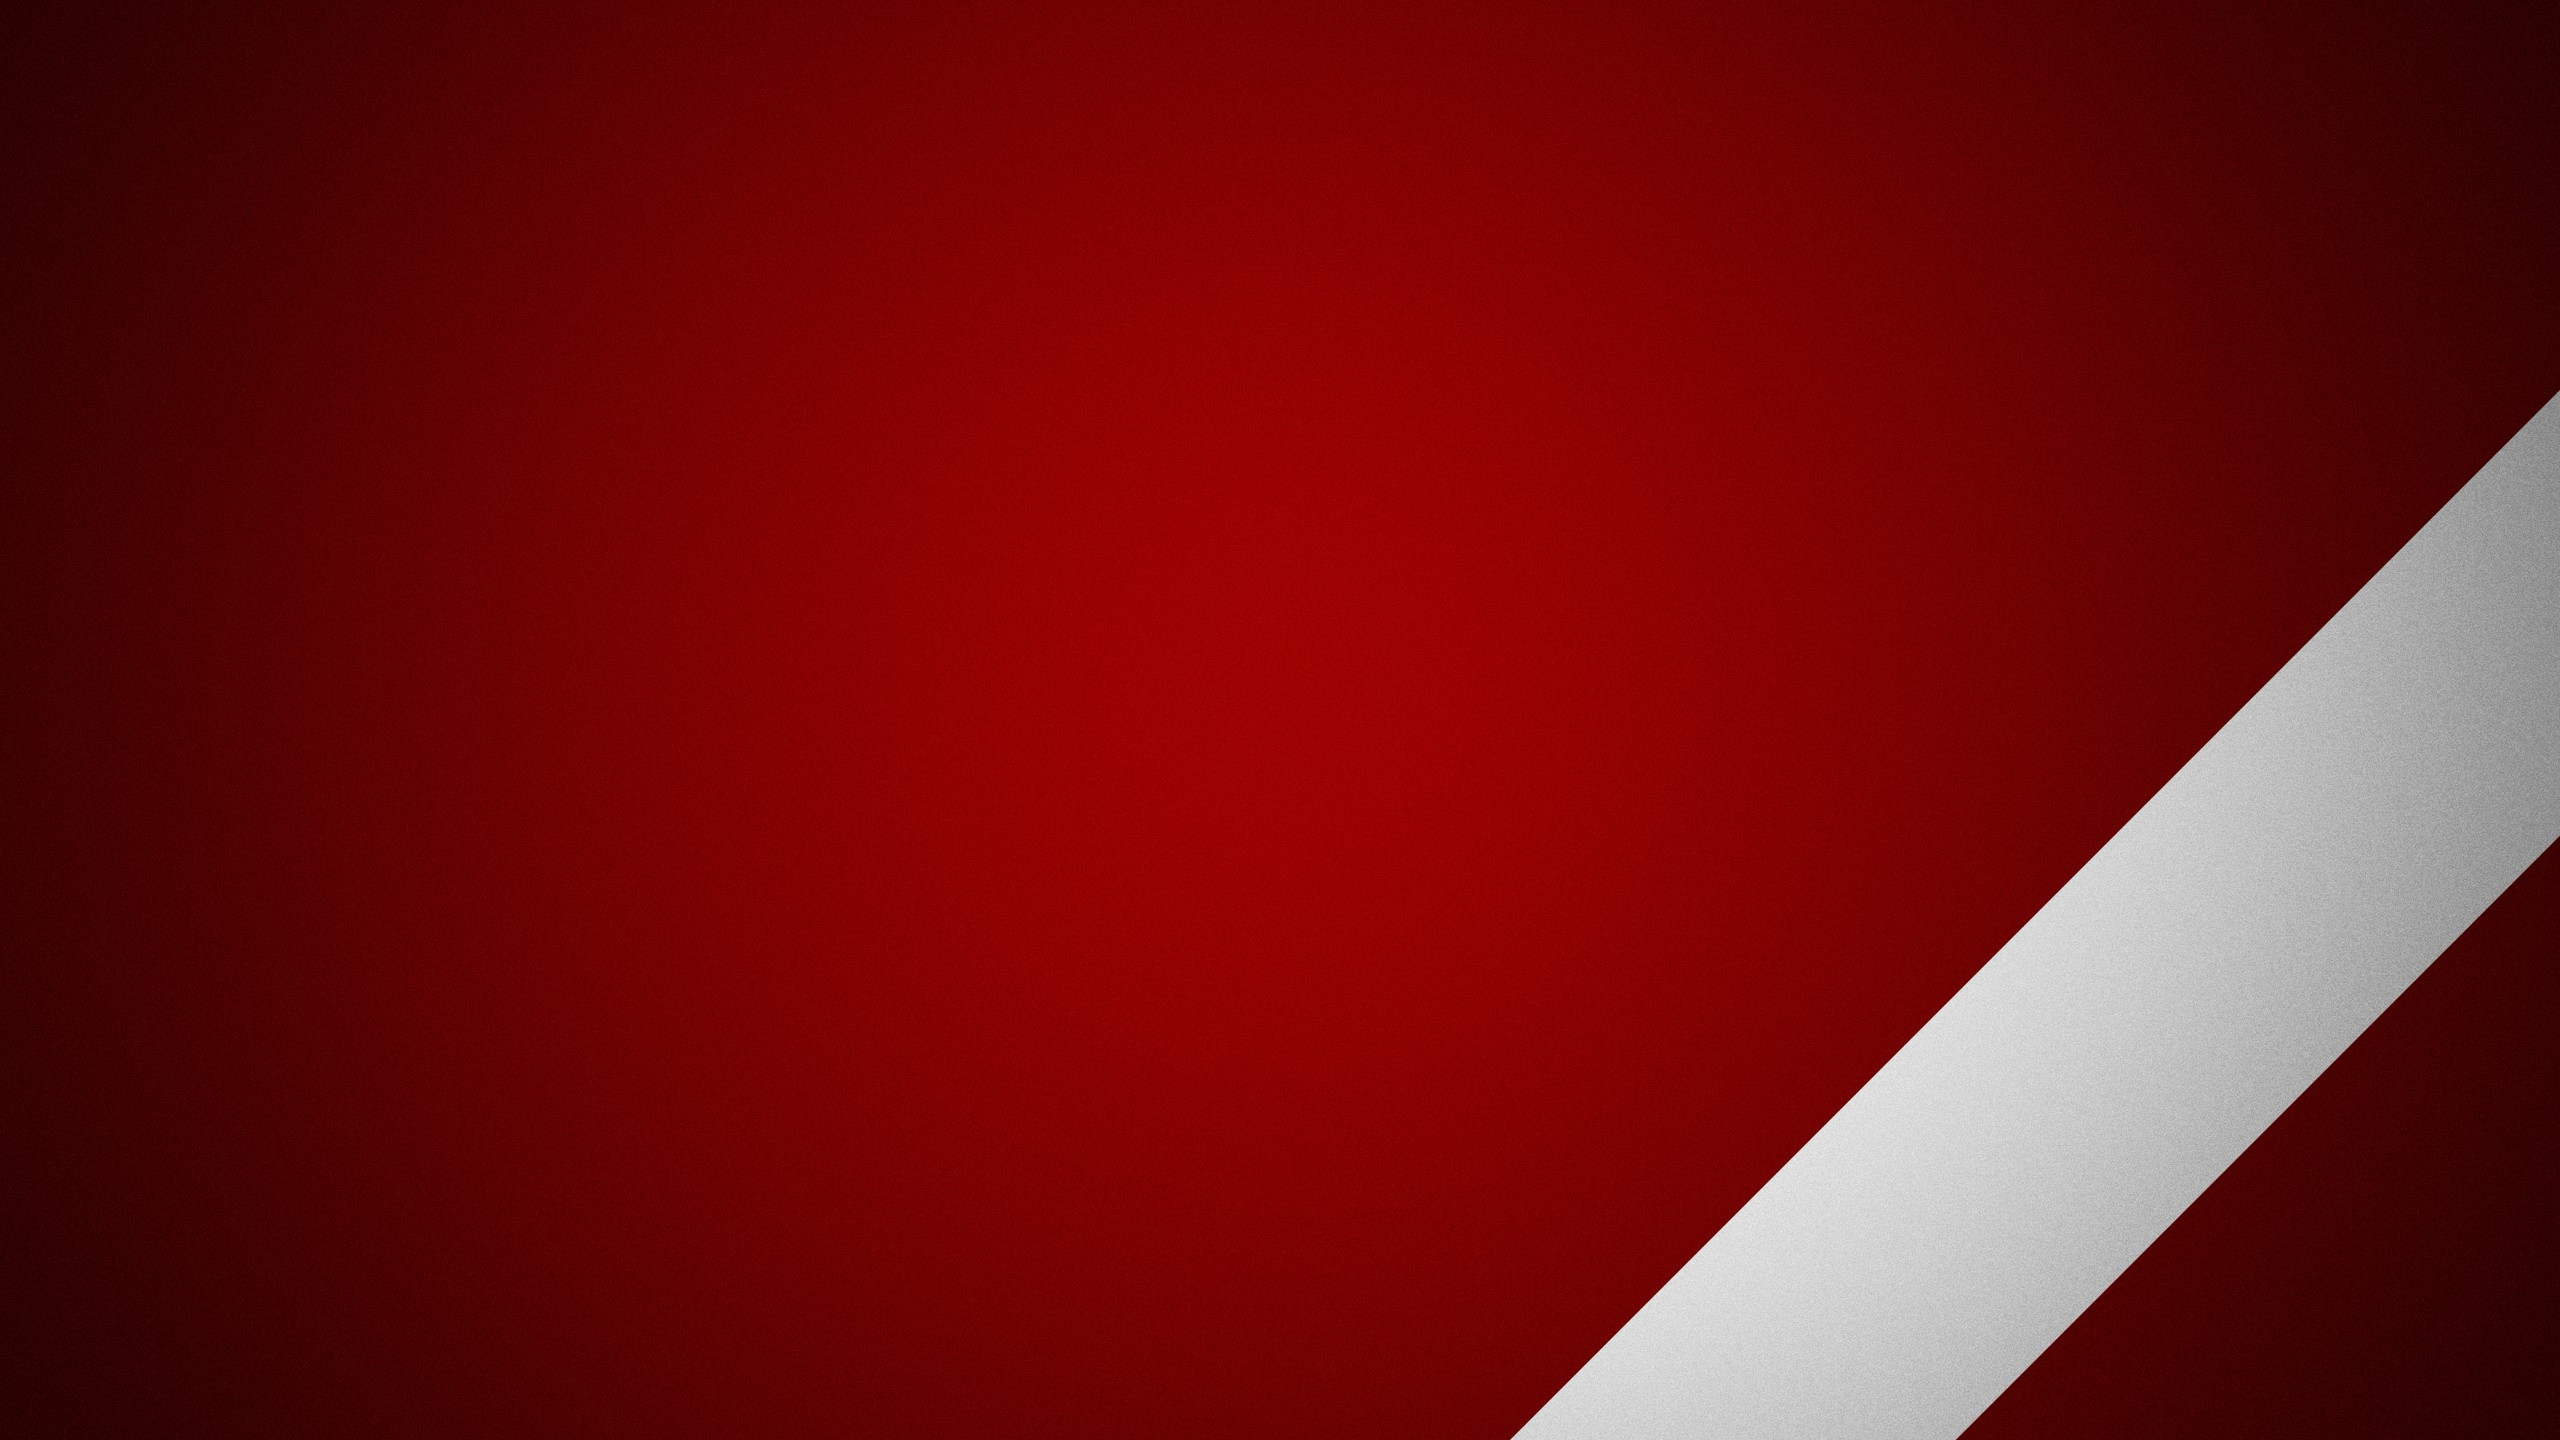 red and white wallpaper backgrounds wallpapersafari. Black Bedroom Furniture Sets. Home Design Ideas